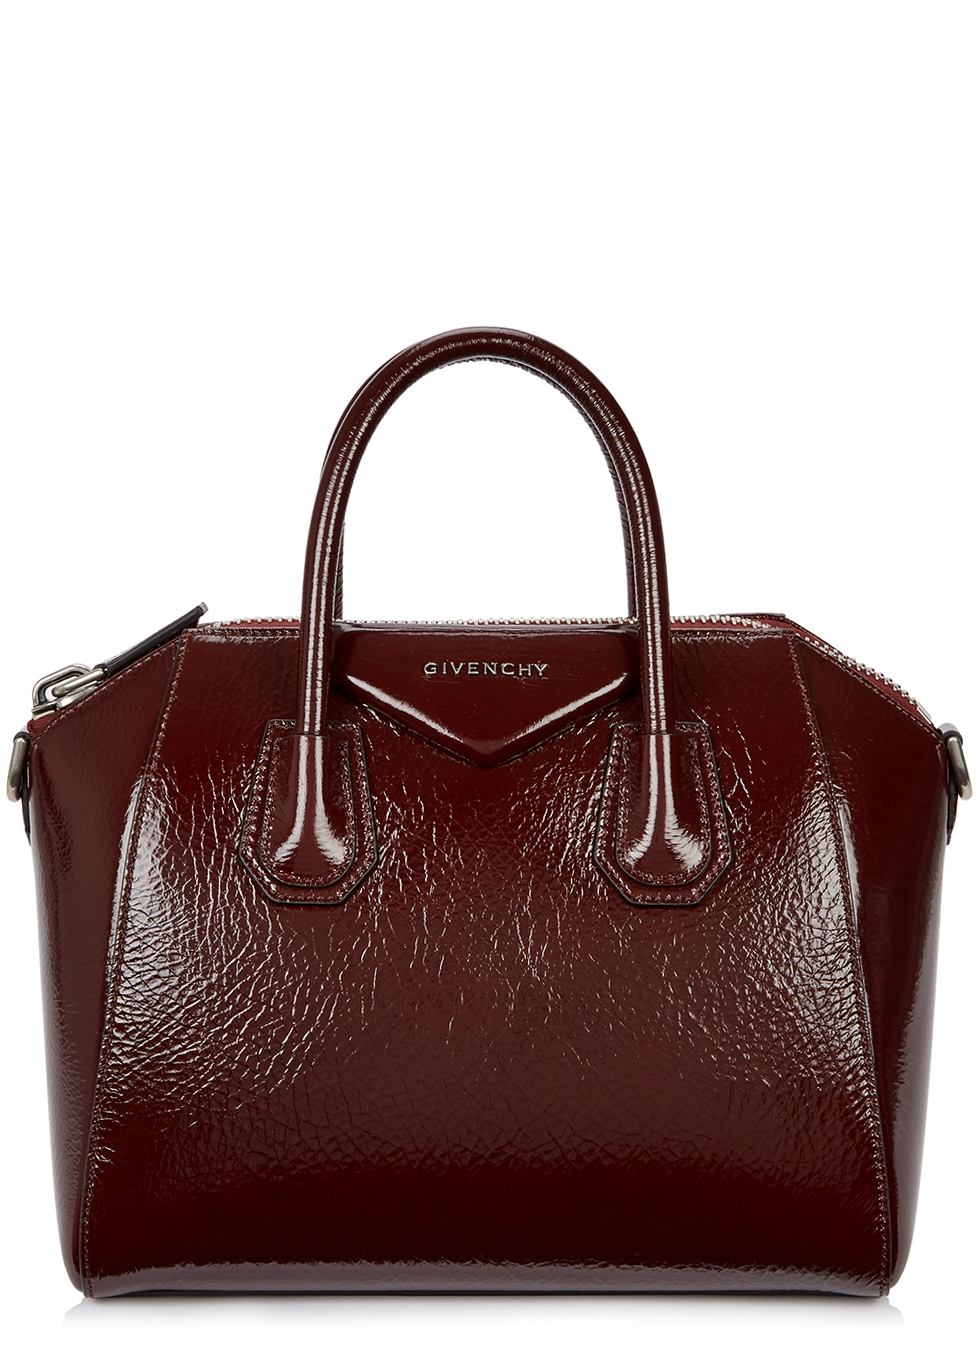 ANTIGONA SMALL BURGUNDY LEATHER TOTE